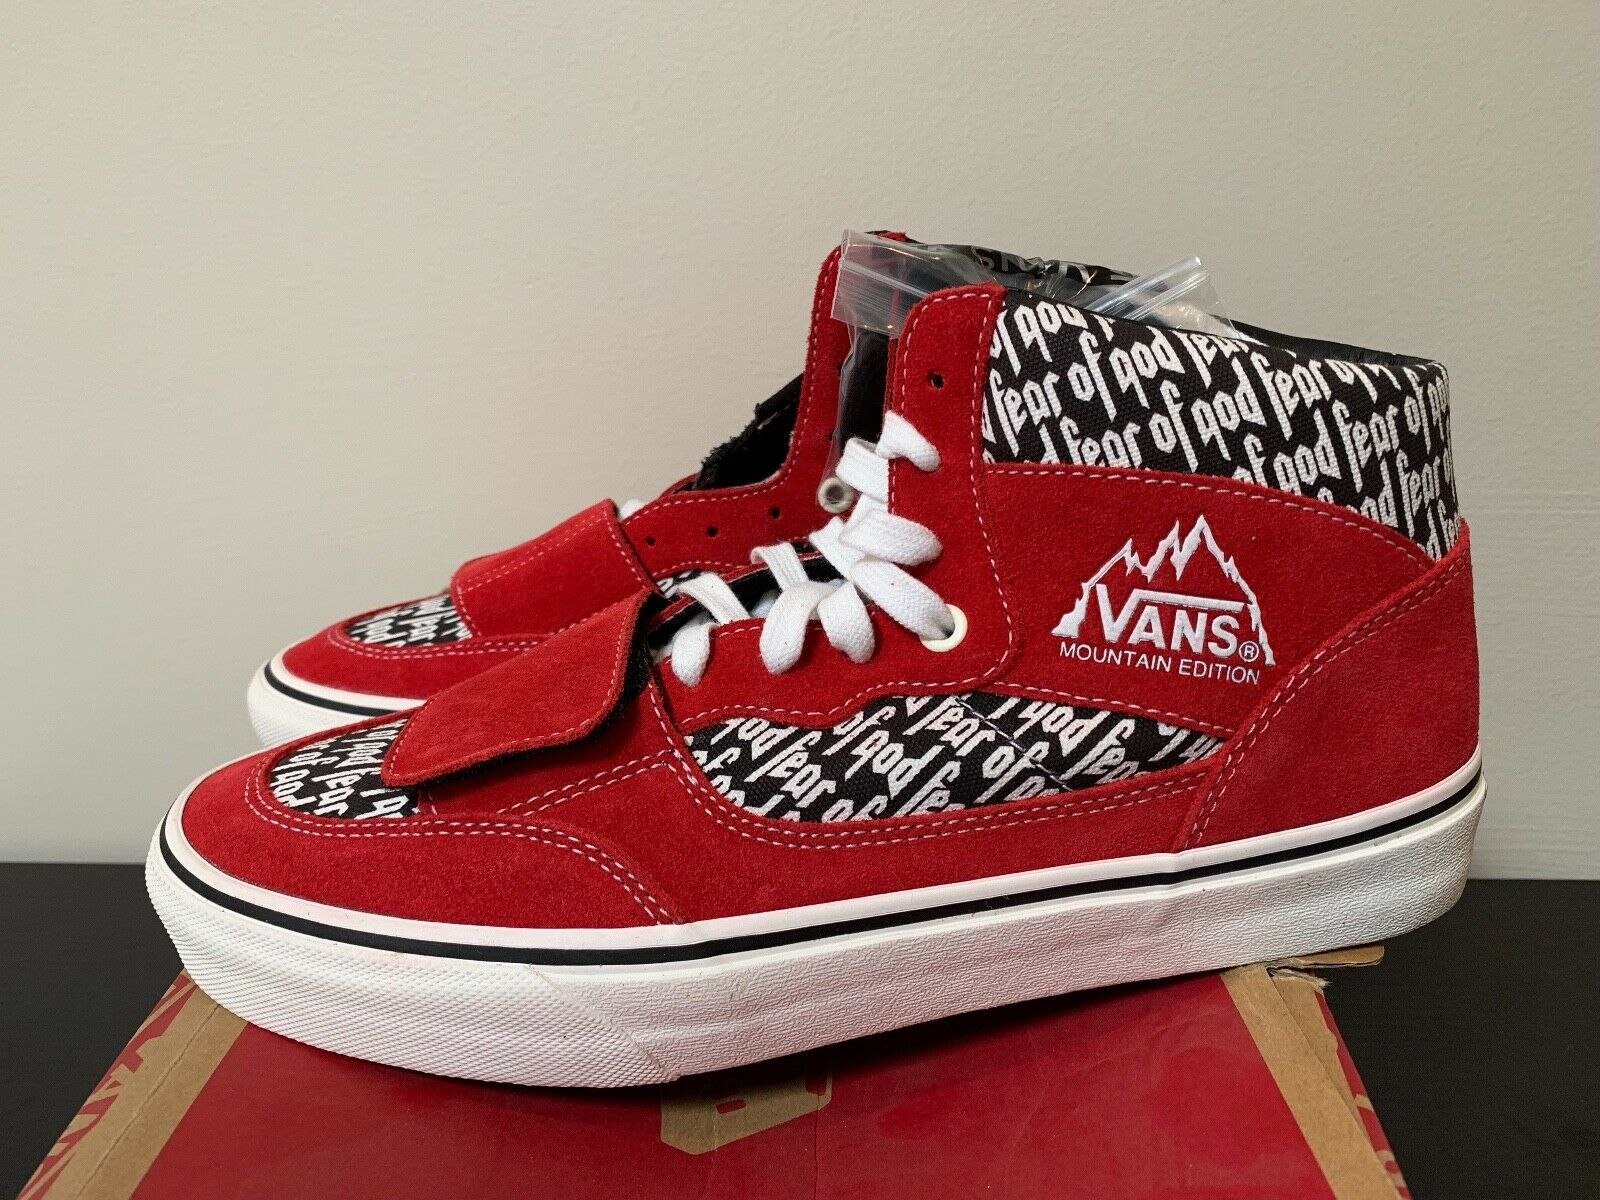 Vans Mountain Edition Fear of God Red